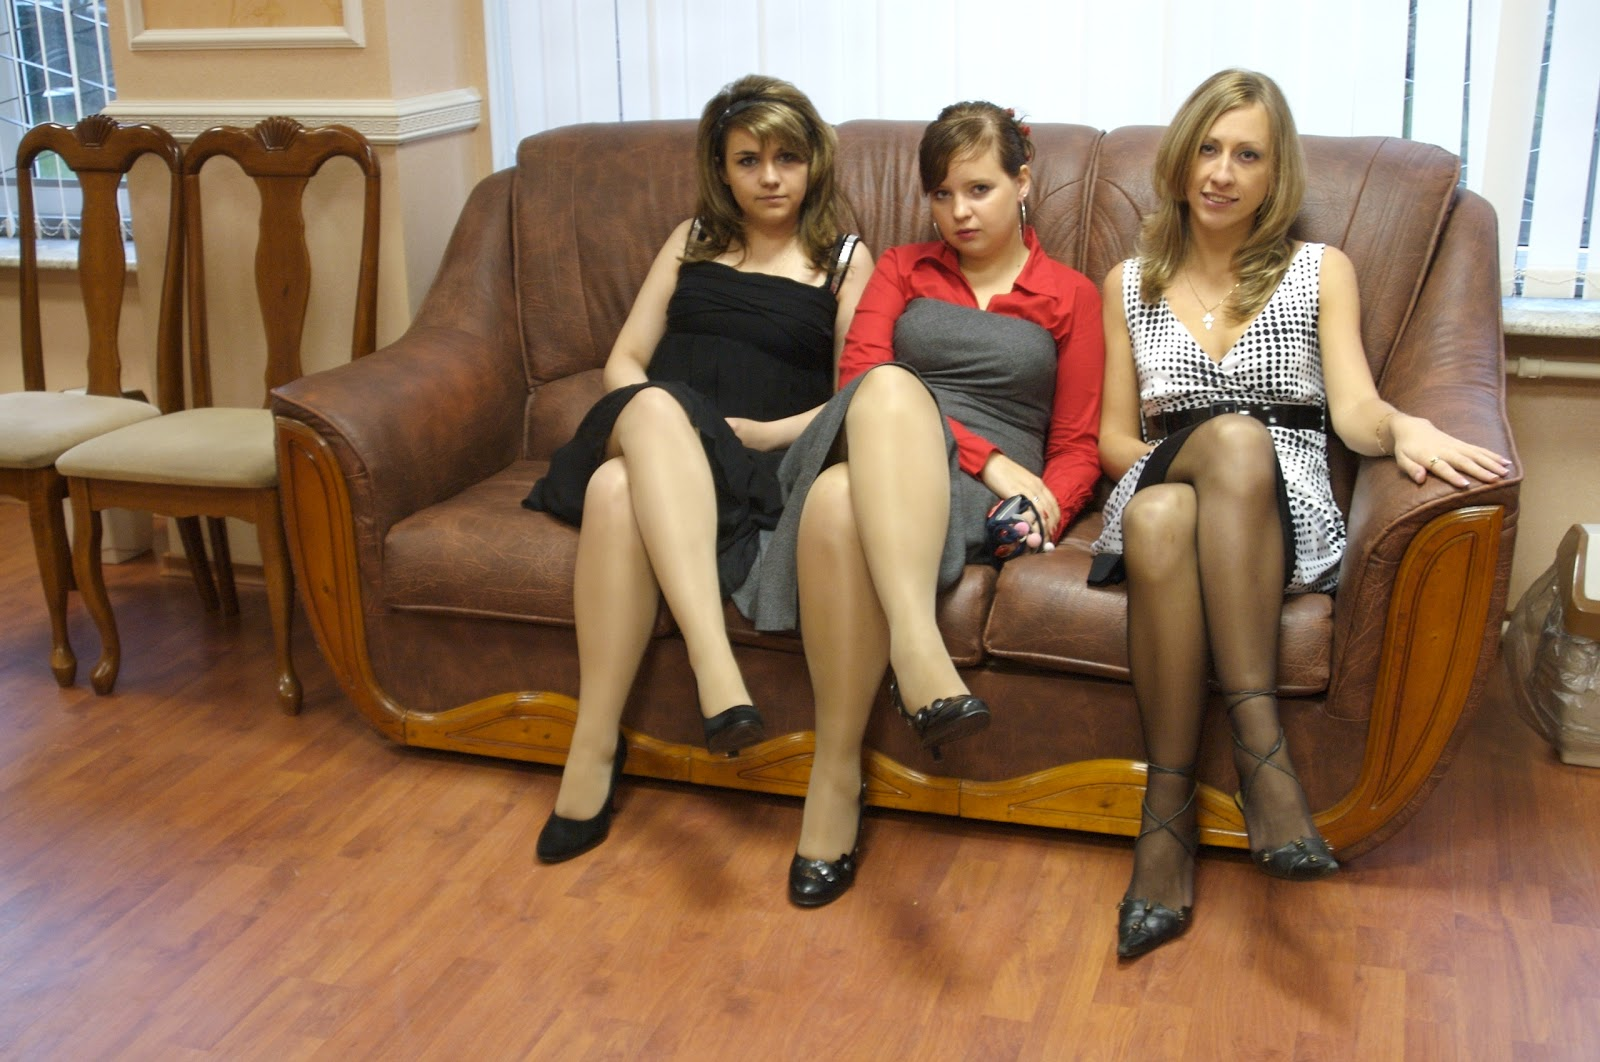 Her Young tight skirt models pantyhose look those big